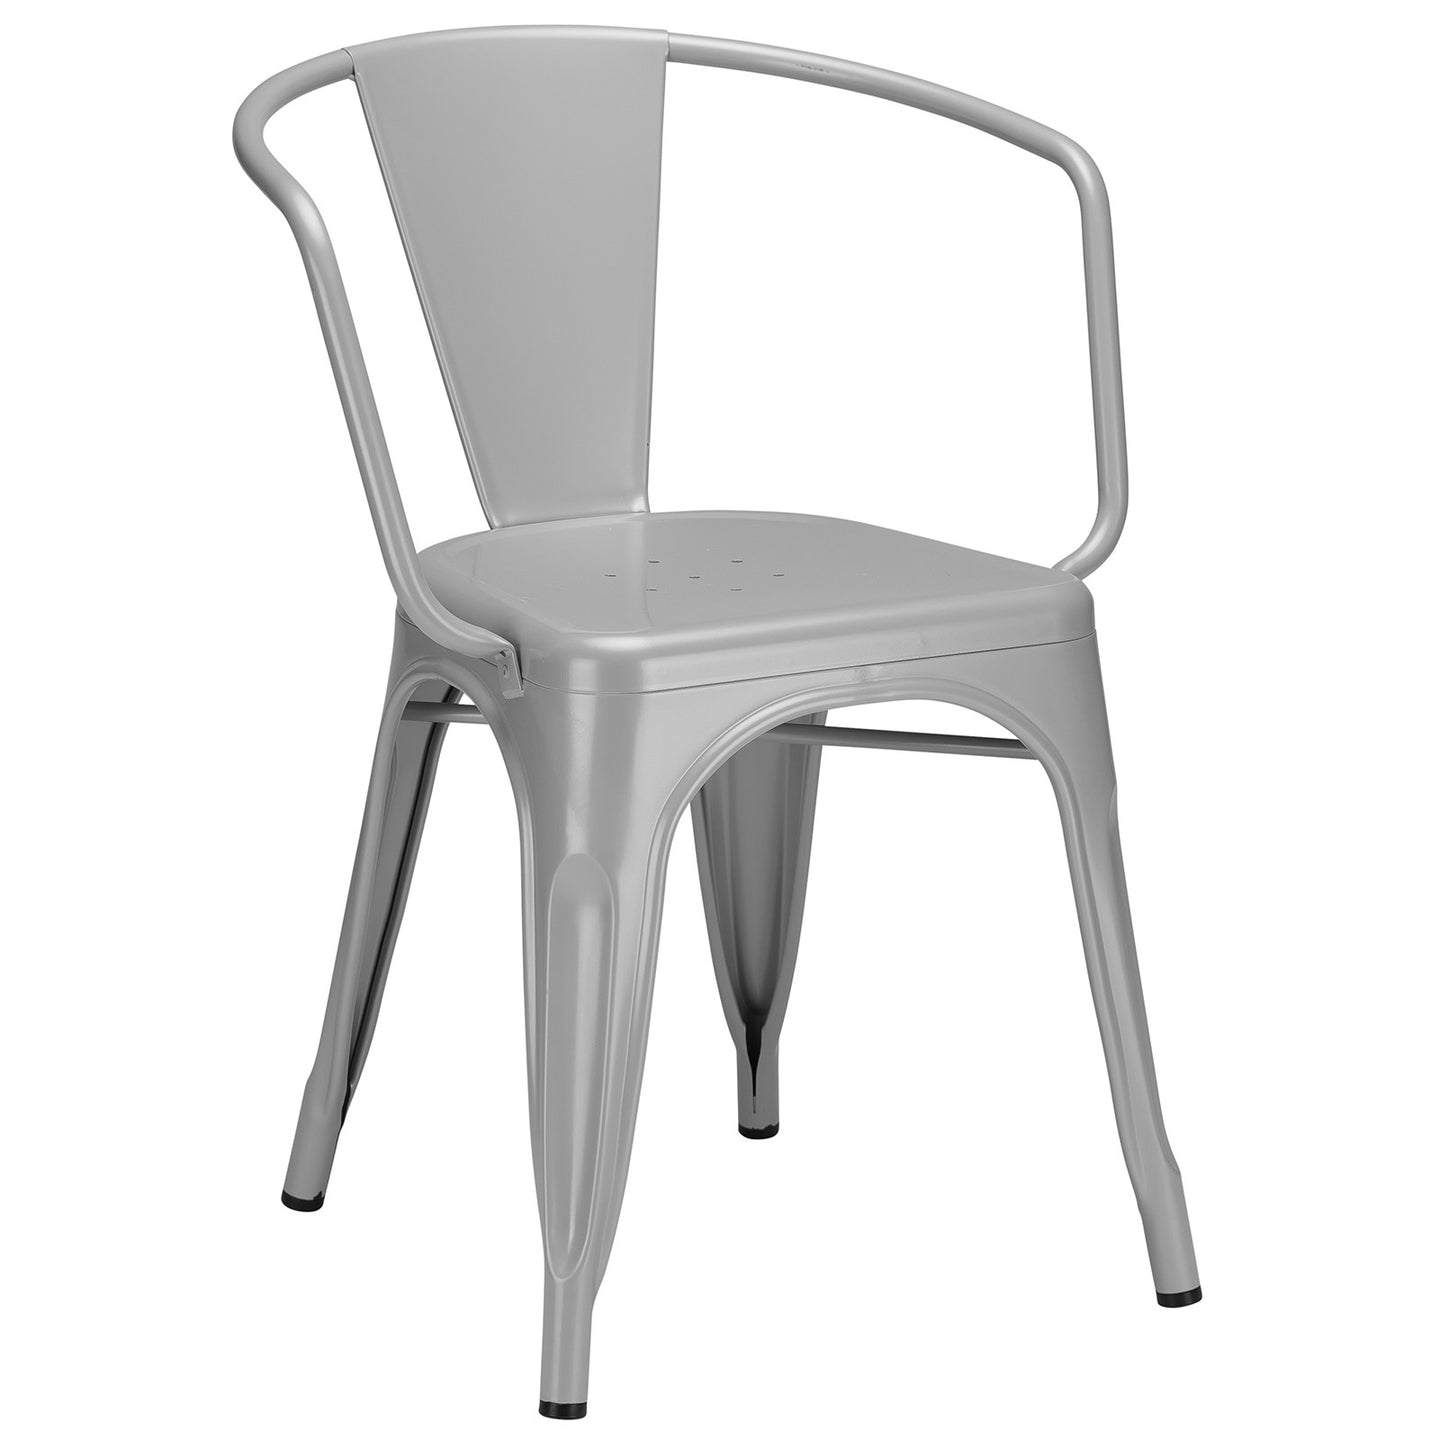 Lanna Furniture Suthep Arm Chair (Set of 2) Grey, Dining Chairs - Lanna Furniture, Minimal & Modern - 9